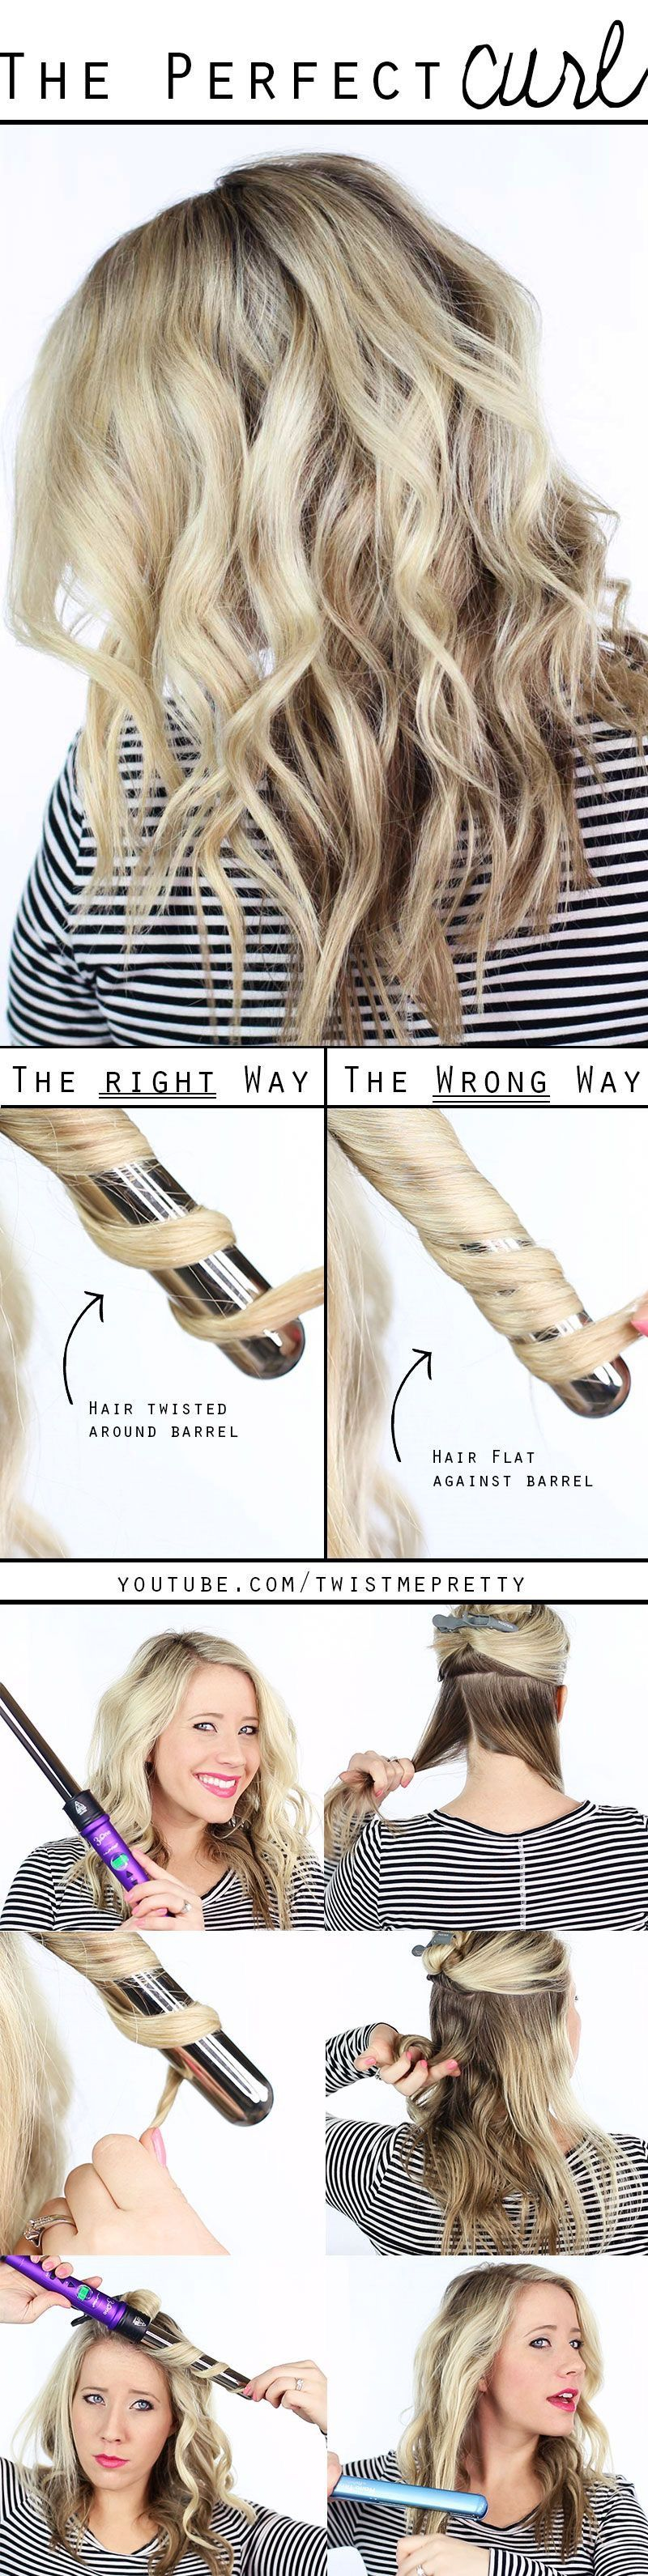 Perfect Curls Curling Hair With Wand Hair Styles How To Curl Your Hair